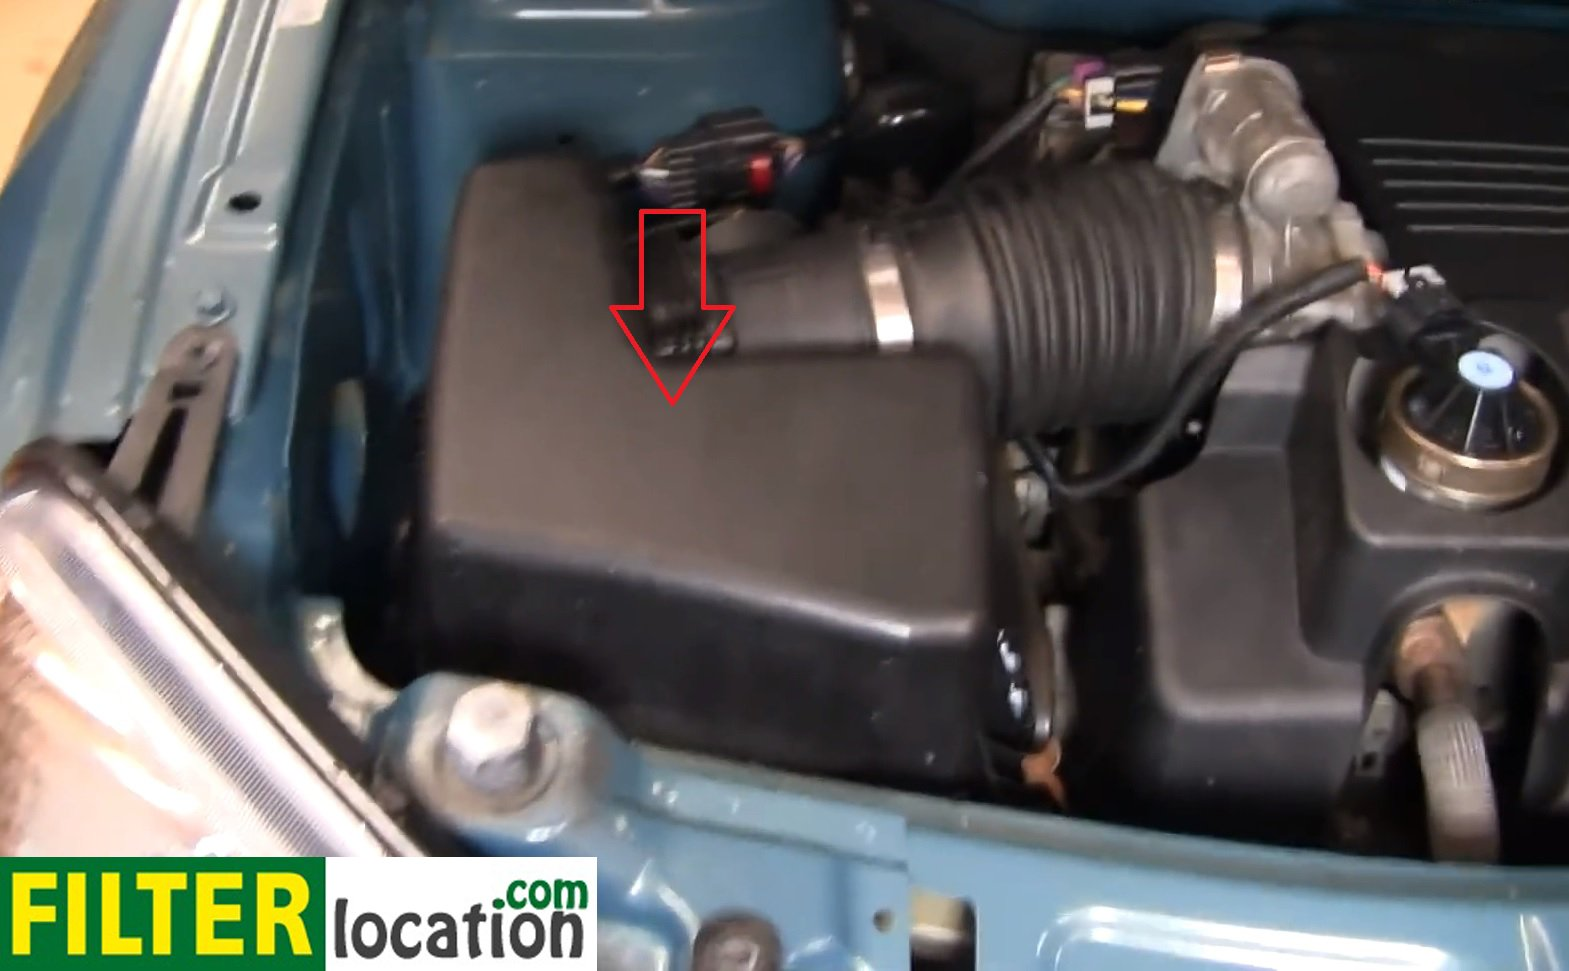 Air Filter Location On Chevy Equinox